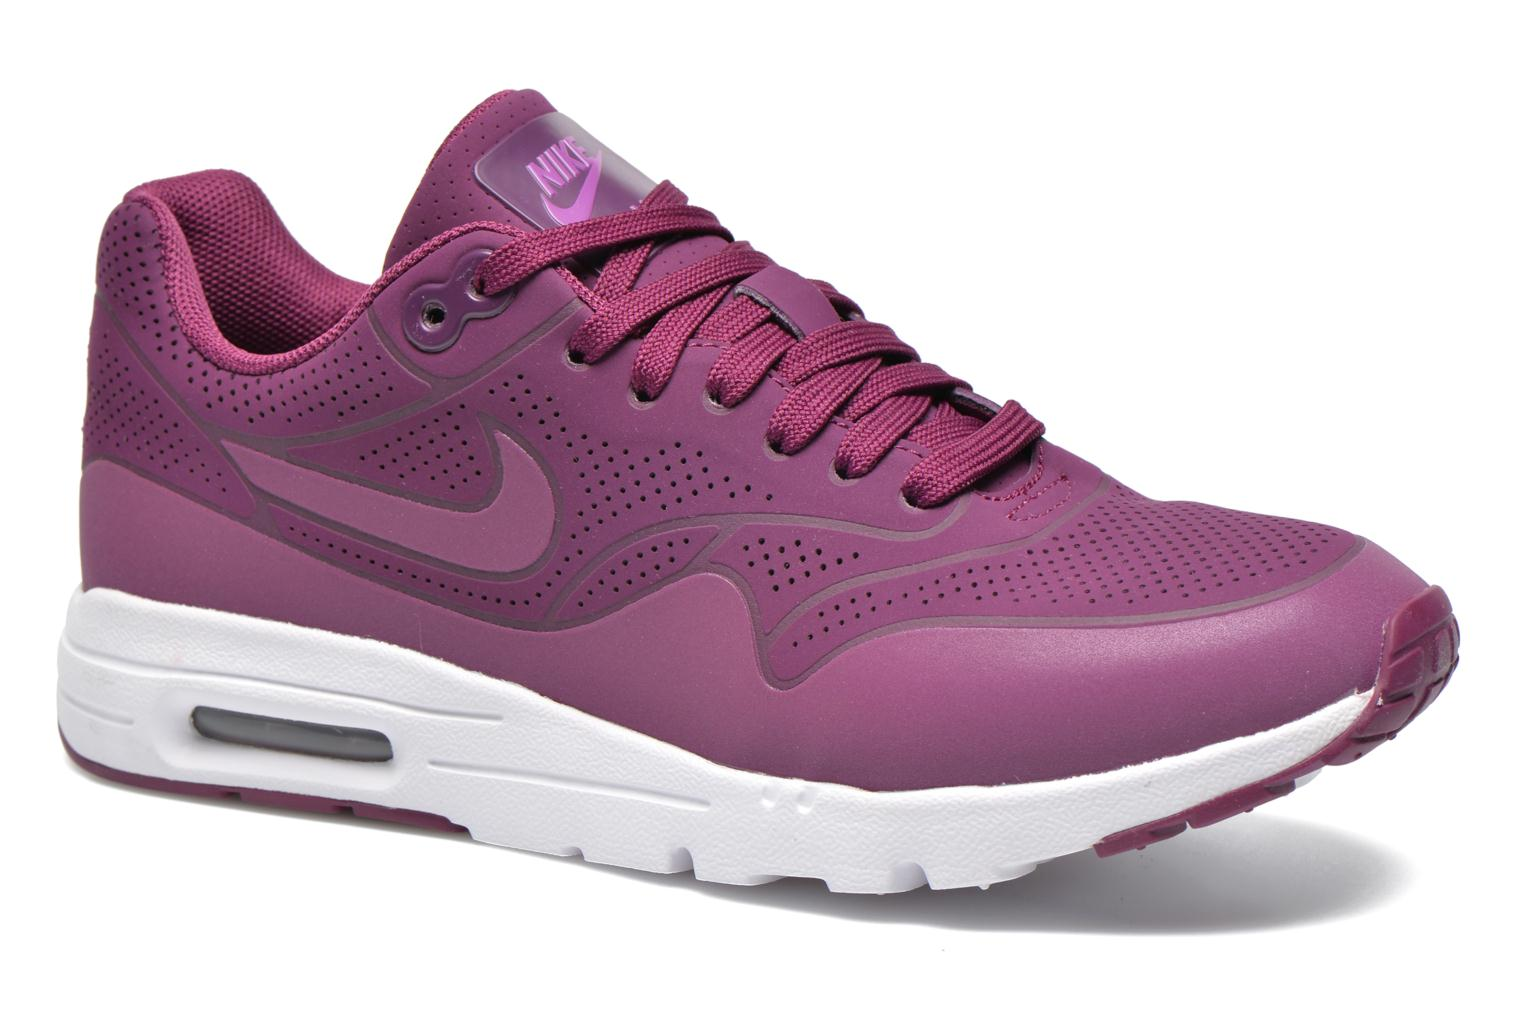 Bleached Lilac/Pnk Blast-White Nike Wmns Air Max 1 Ultra Moire (Rose)